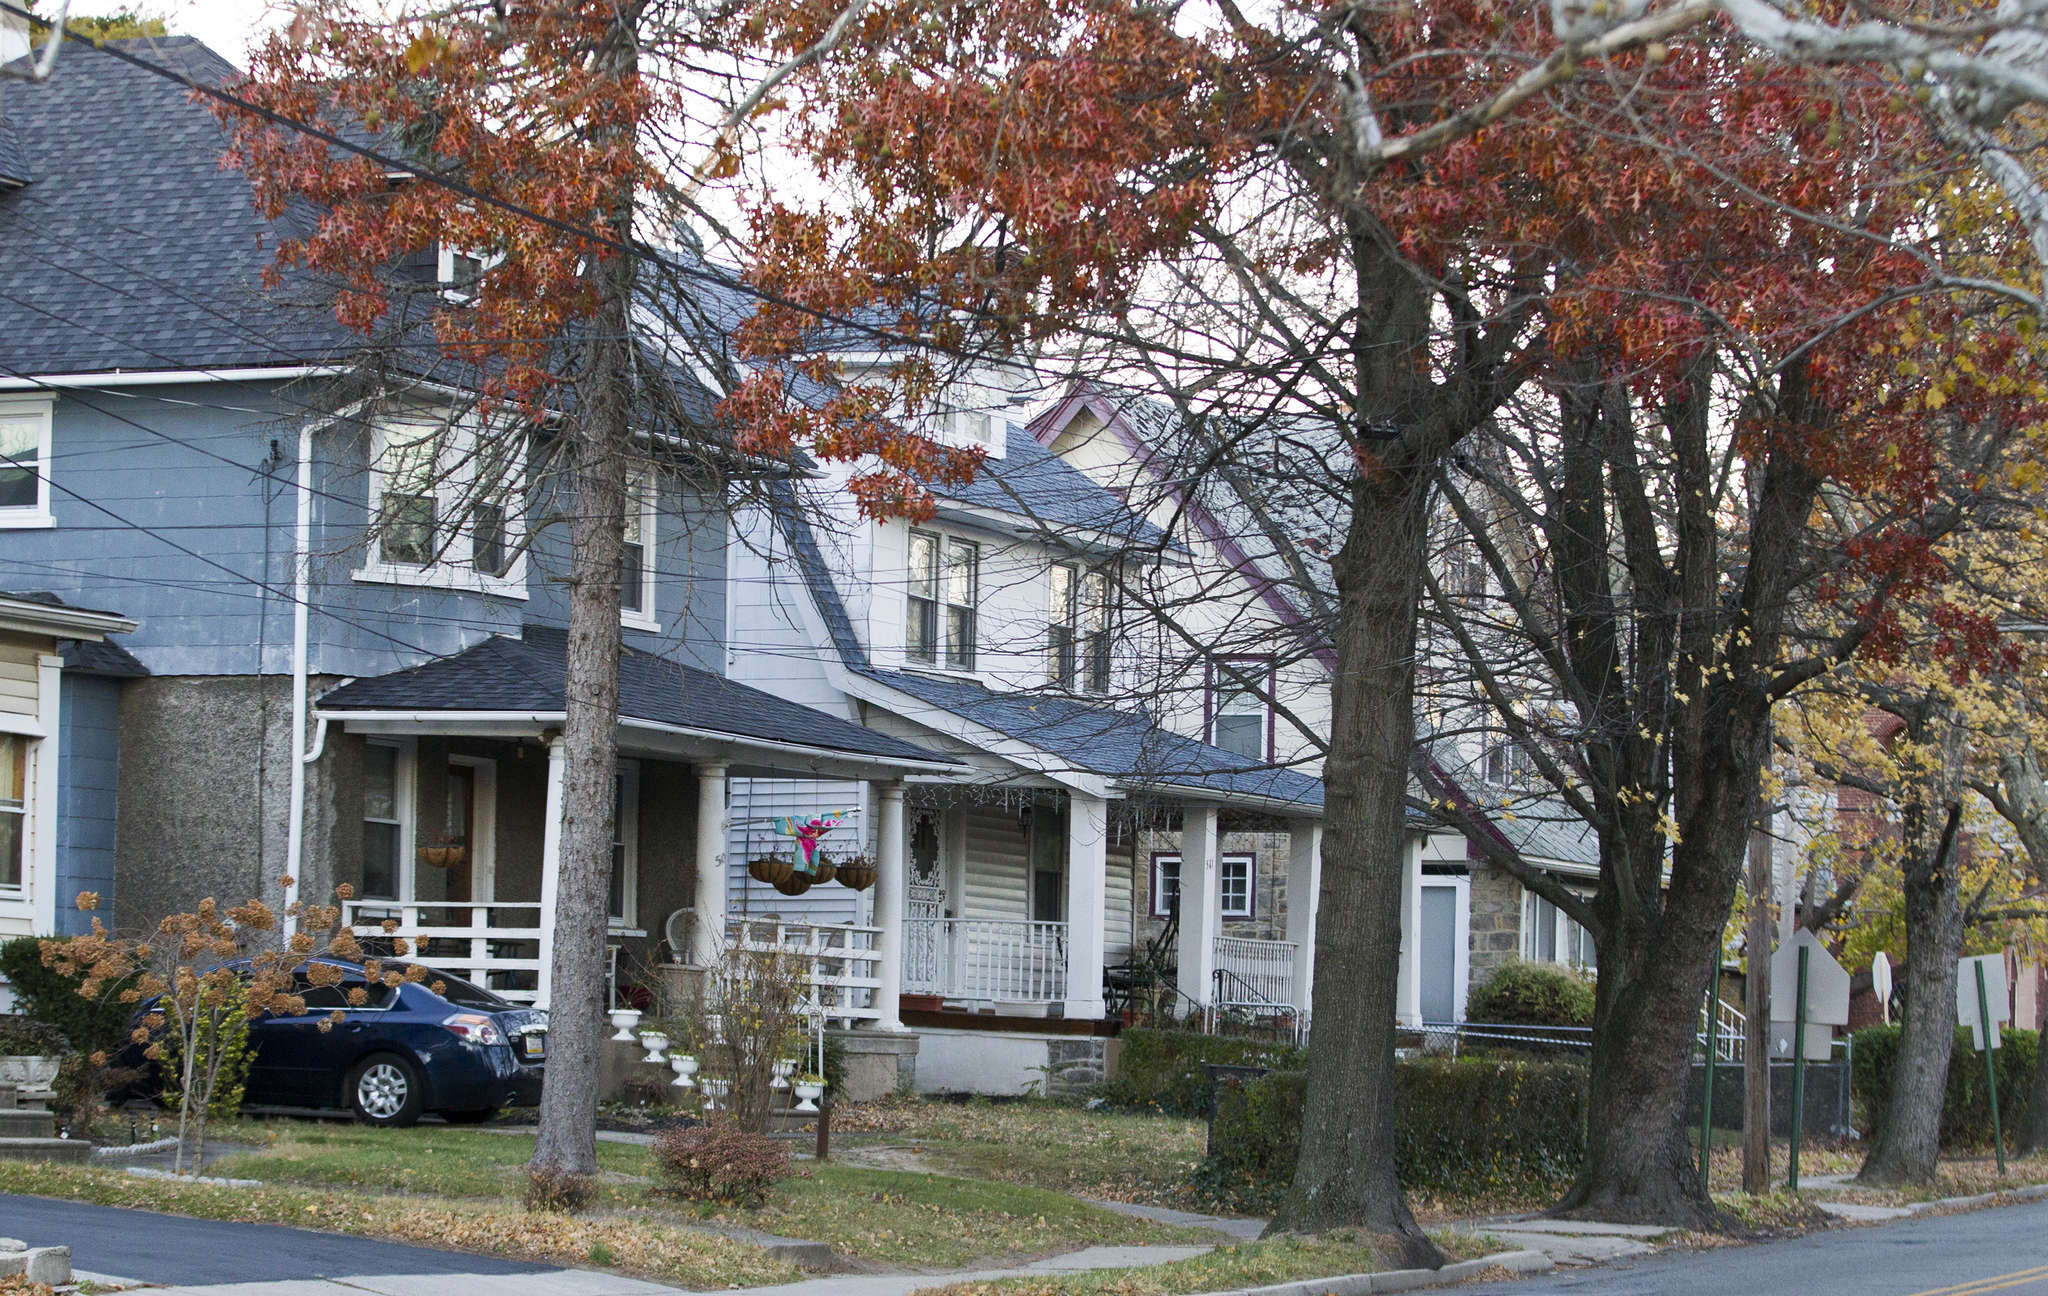 Houses on Pembroke Avenue have a small-town, leafy appeal.